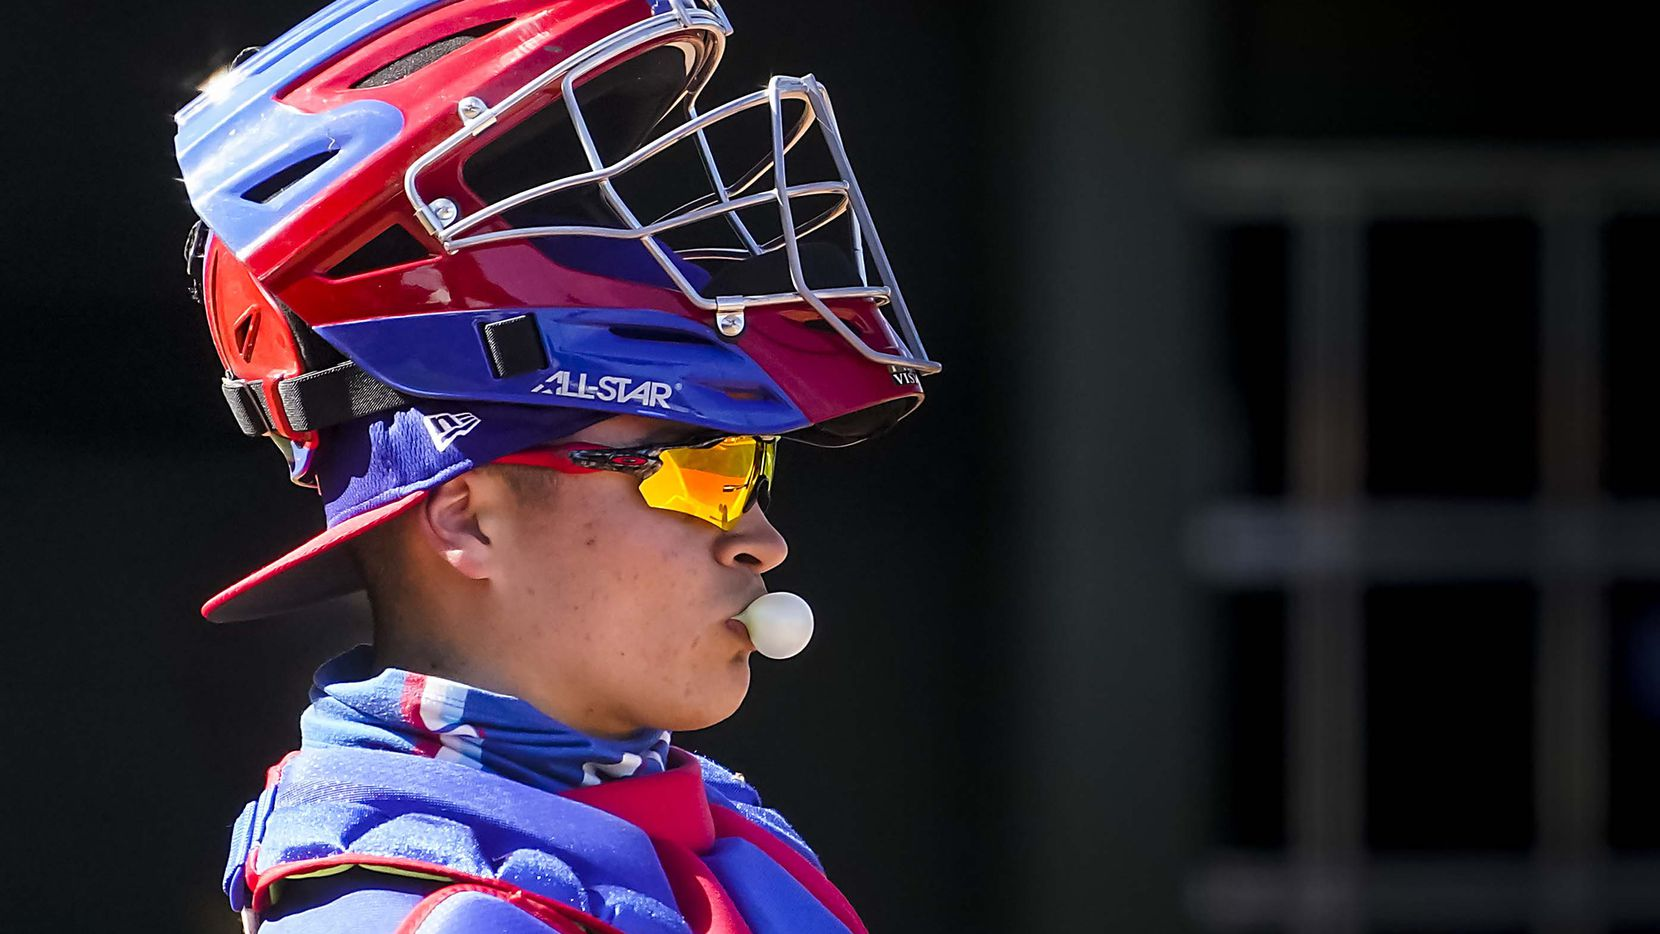 Texas Rangers catcher David Garcia blows a bubble between pitches during the sixth inning of a spring training game against the San Diego Padres at Surprise Stadium on Thursday, March 4, 2021, in Surprise, Ariz.